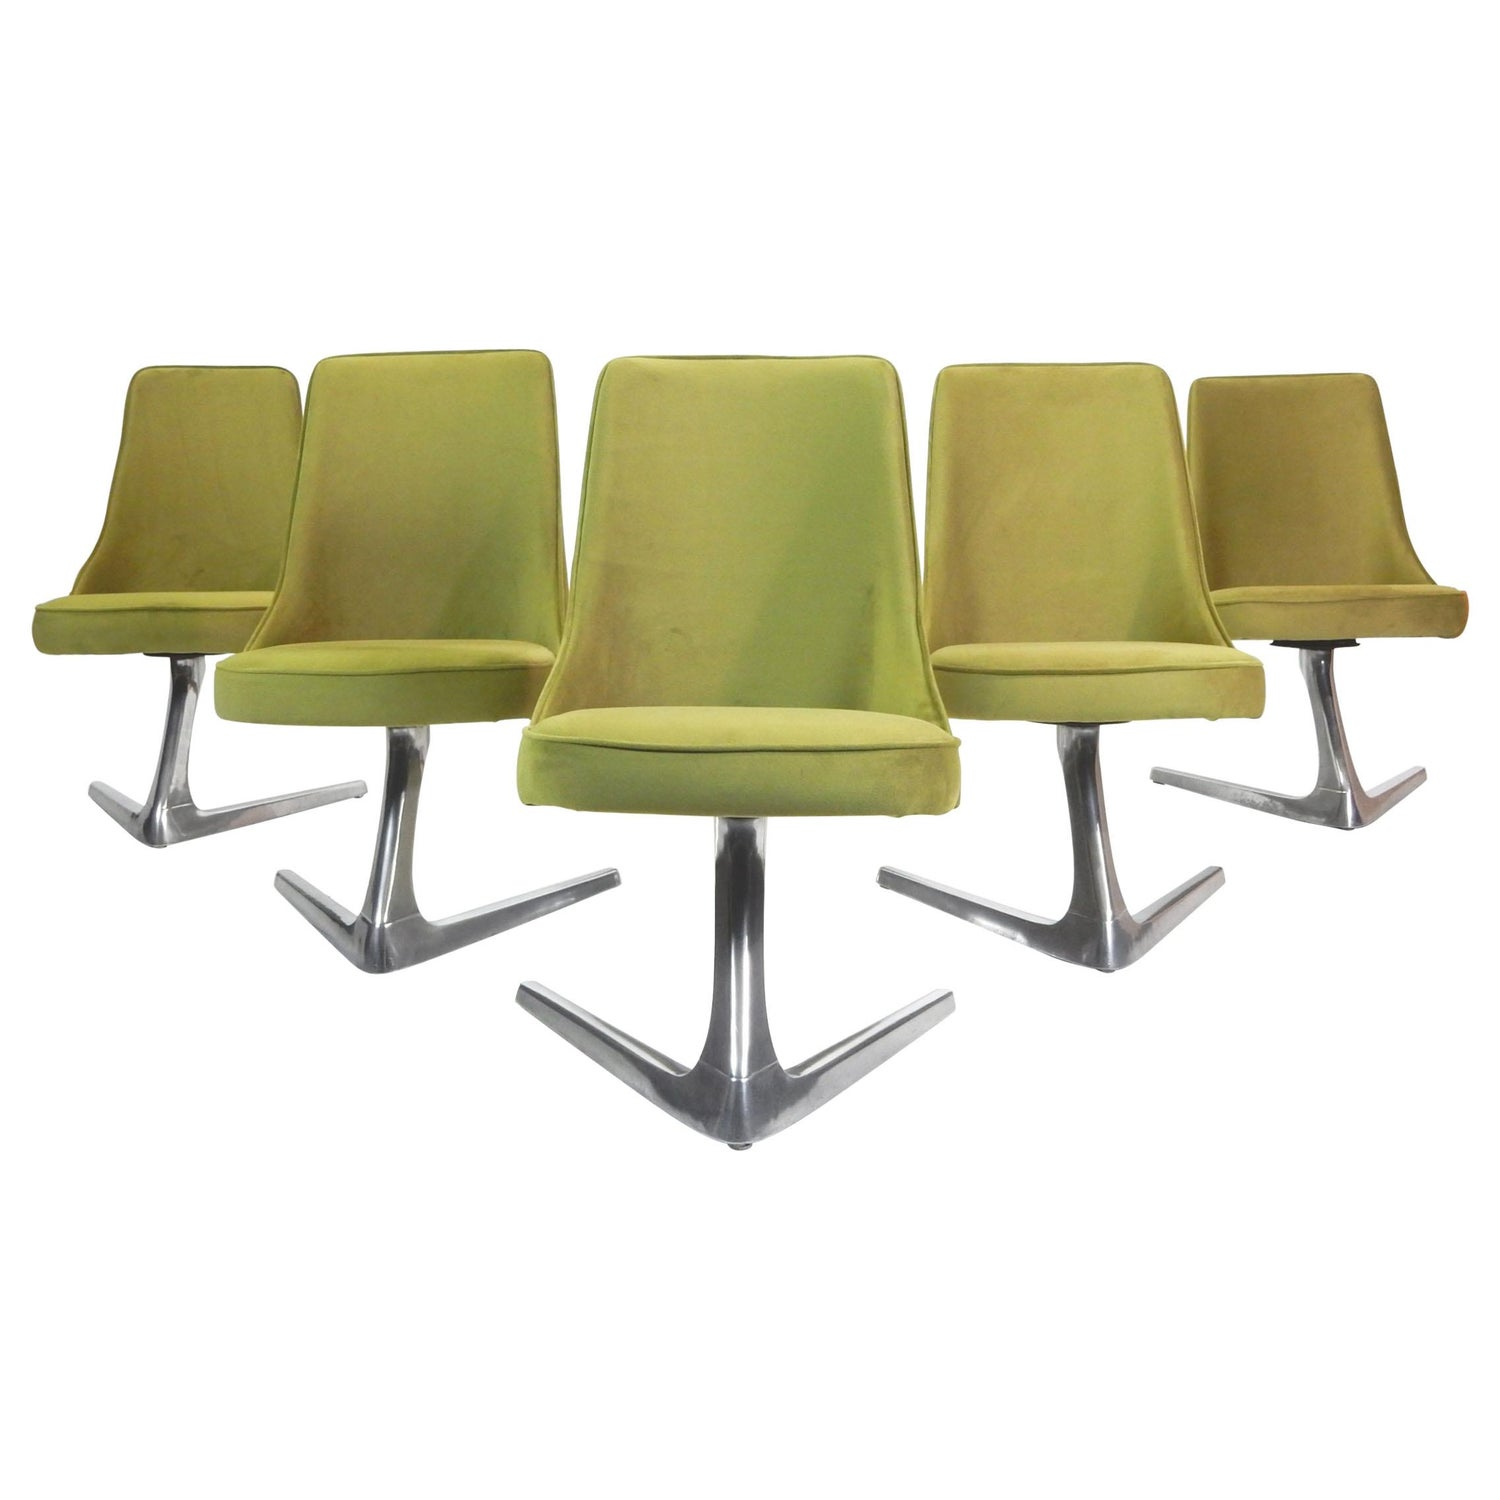 Marvelous Six Midcentury Green Velvet Swivel Dining Chairs Unemploymentrelief Wooden Chair Designs For Living Room Unemploymentrelieforg